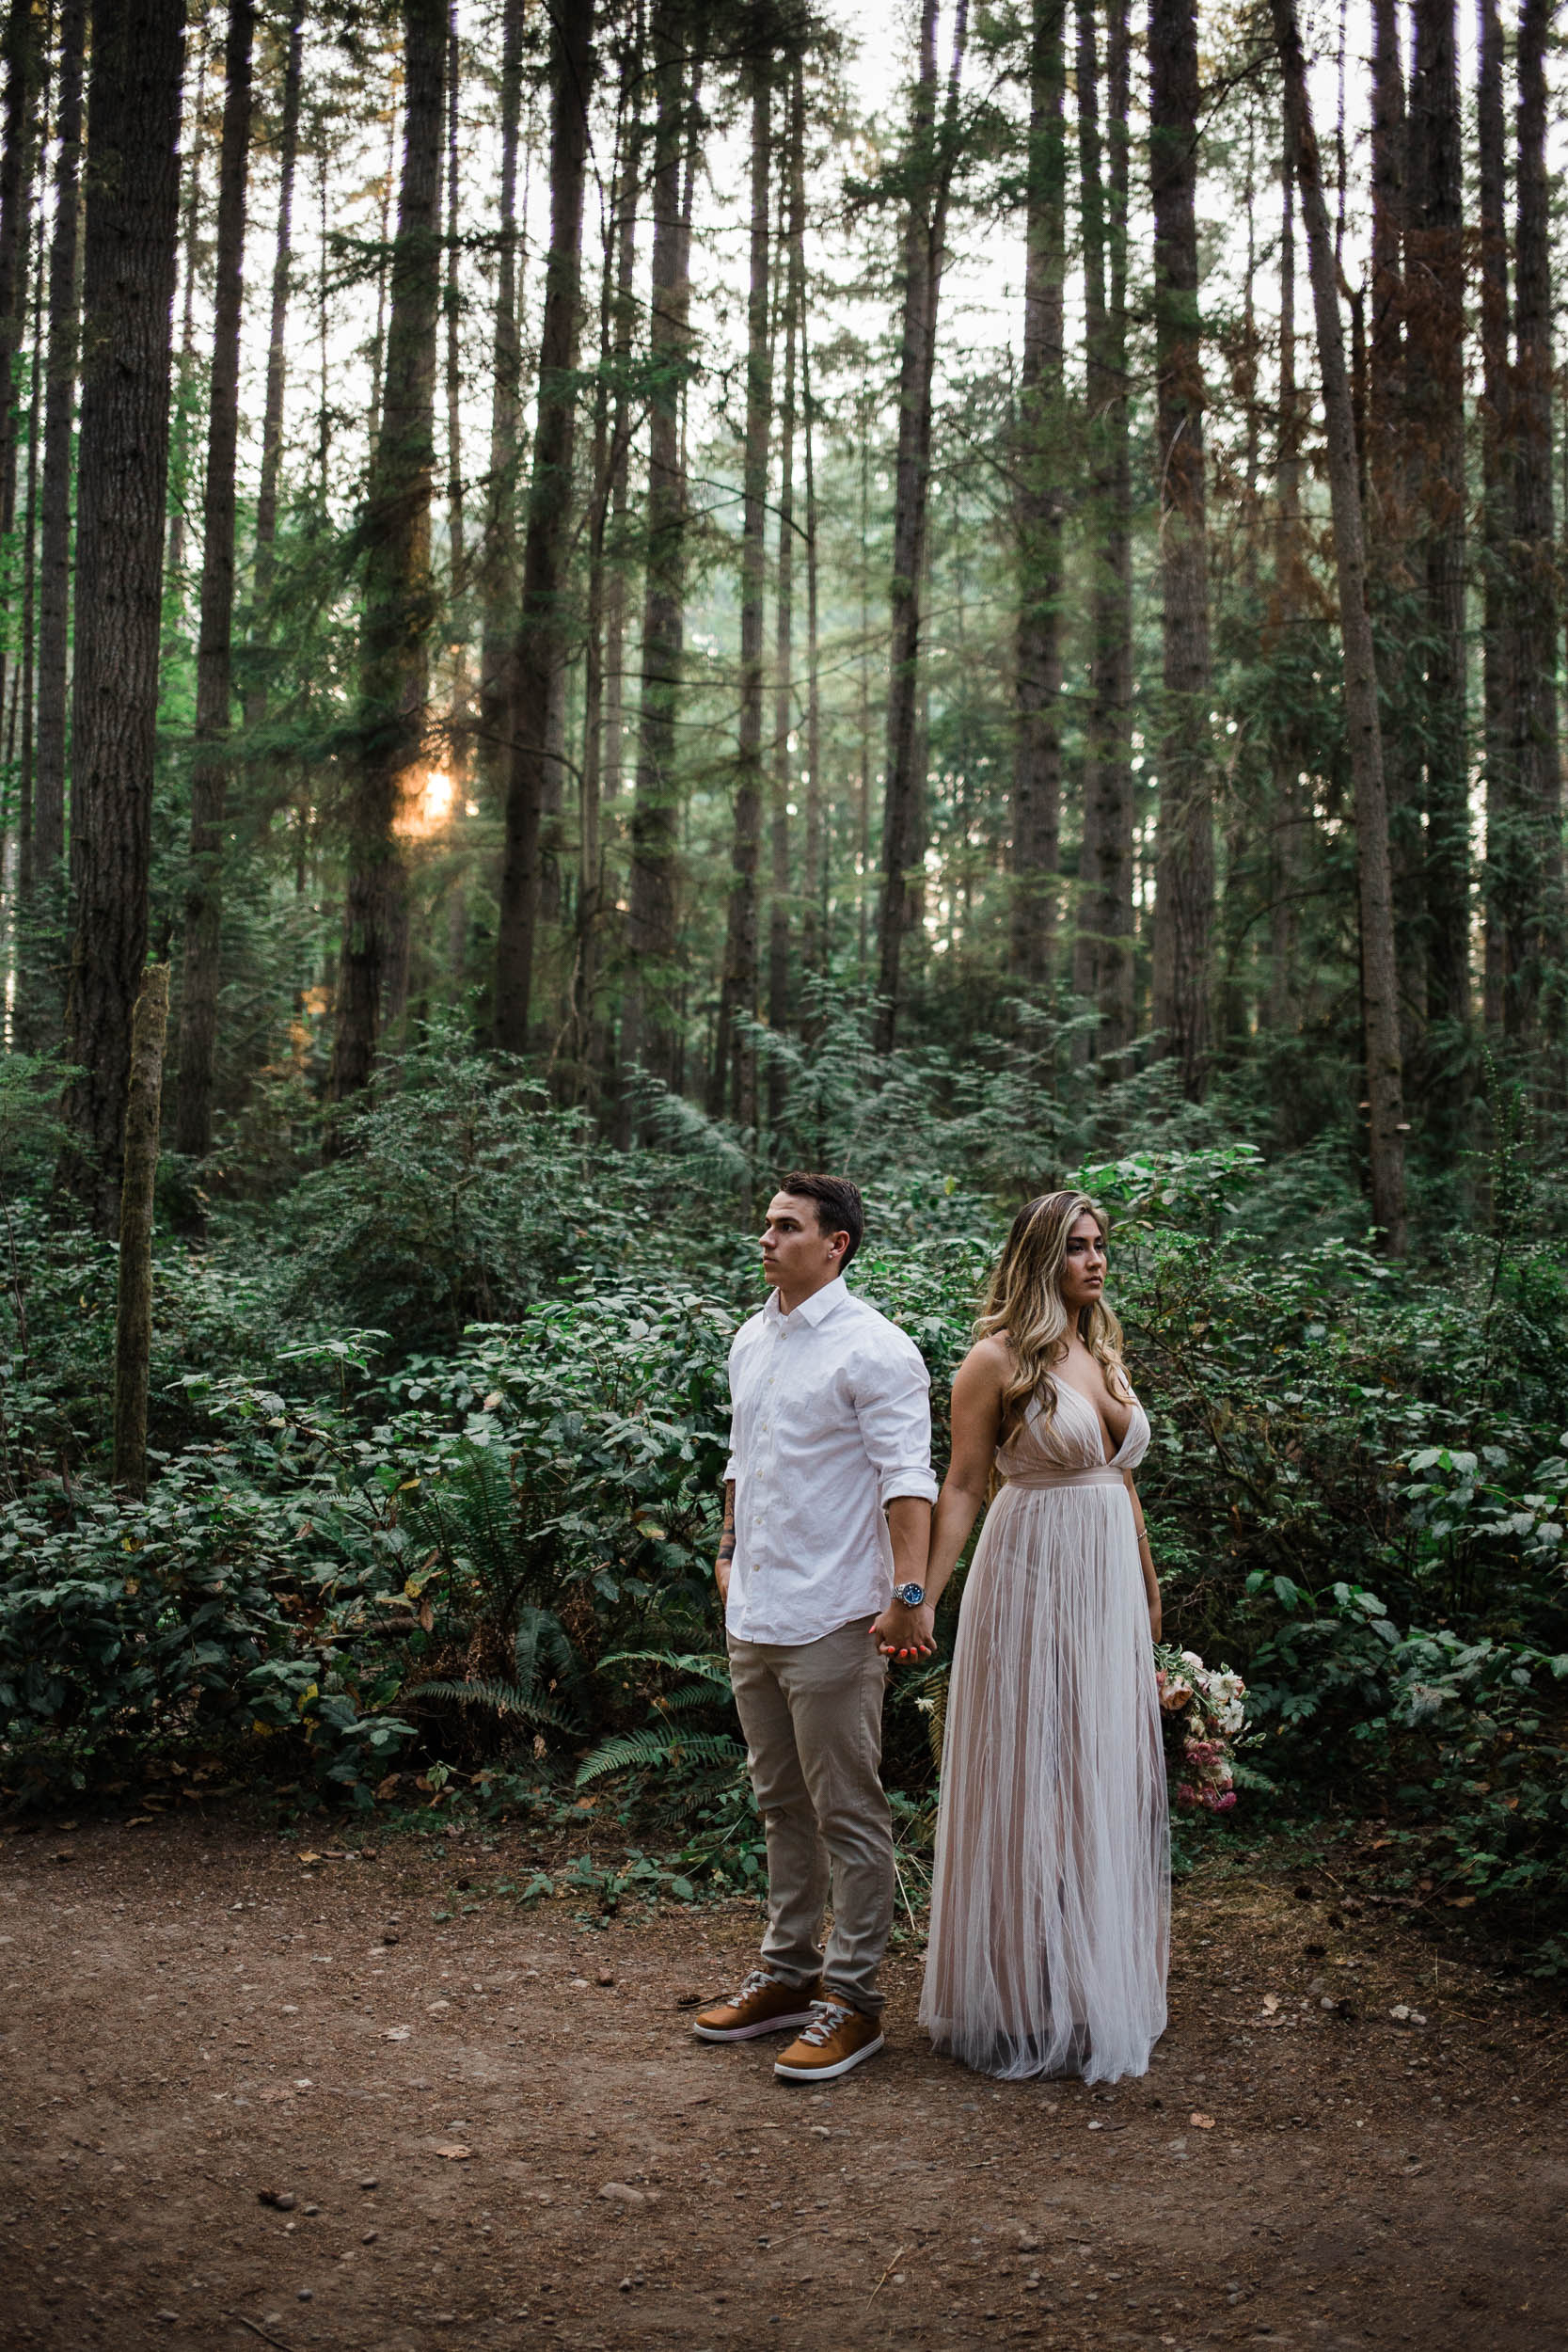 Bainbridge-Island-Elopement-KyleLovesTori-4.jpg